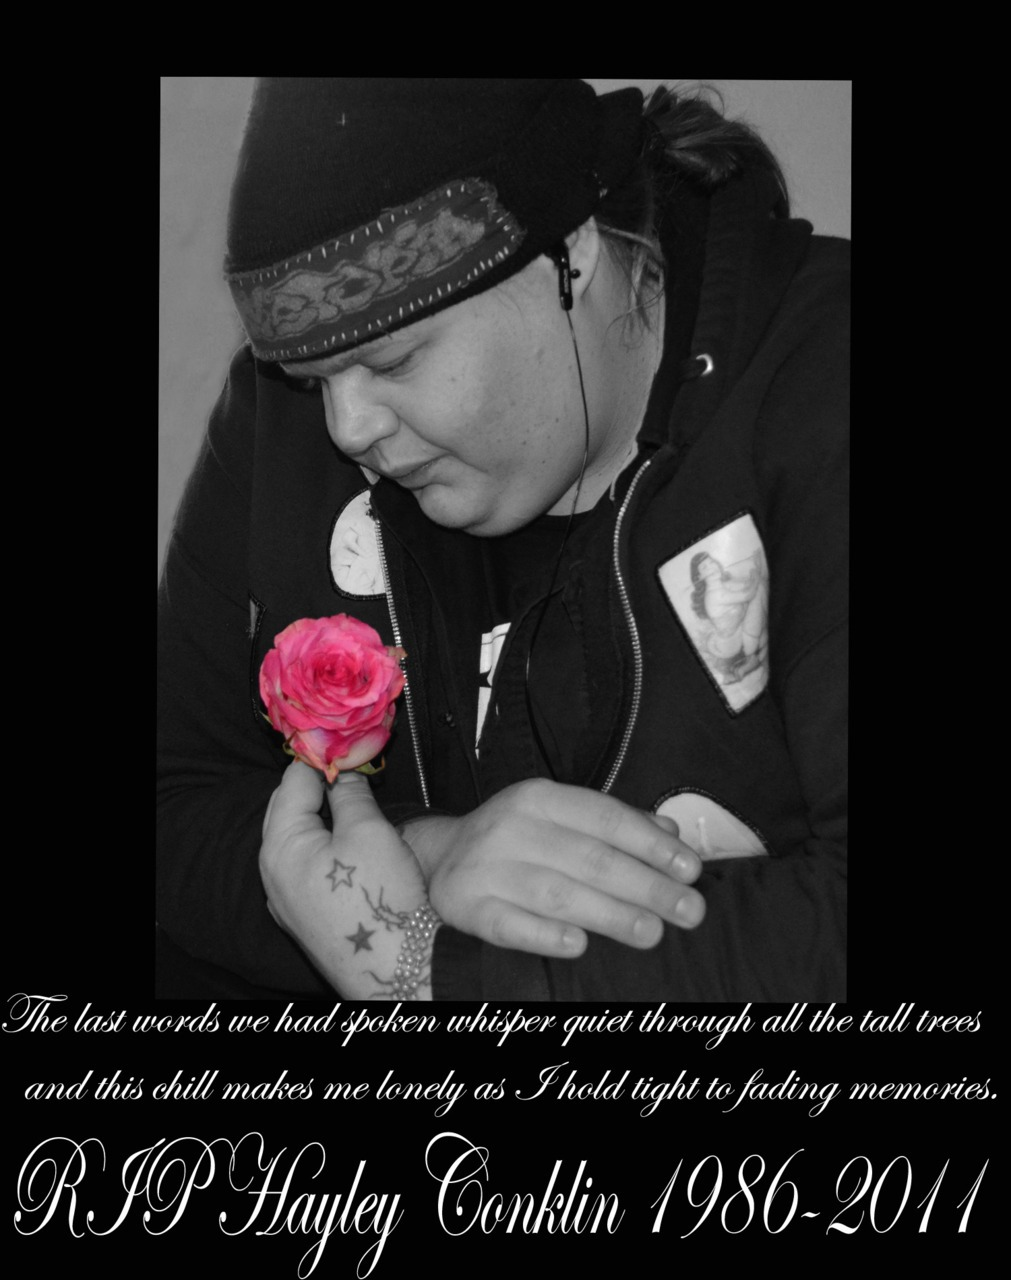 "I made this for my friend Hayley that passed recently. This photo of me was taken after her memorial, and I took a rose from the ceremony to take a piece of her to keep with me forever. I was in a different place that night. I was really drunk, and I wanted to be far from reality as possible. I guess this photo depicts the emotions I was feeling that night. I decided to make something for her. The words at the bottom are from a song called Broken by Star Fucking Hipsters. It reads:   ""the last words we had spoken whisper quiet through all the tall trees and this chill makes me lonely as I hold tight to fading memories""   The photograph was taken by a close friend of mine using my camera.    I love you Hayley. I will never forget you. Rest in peace."